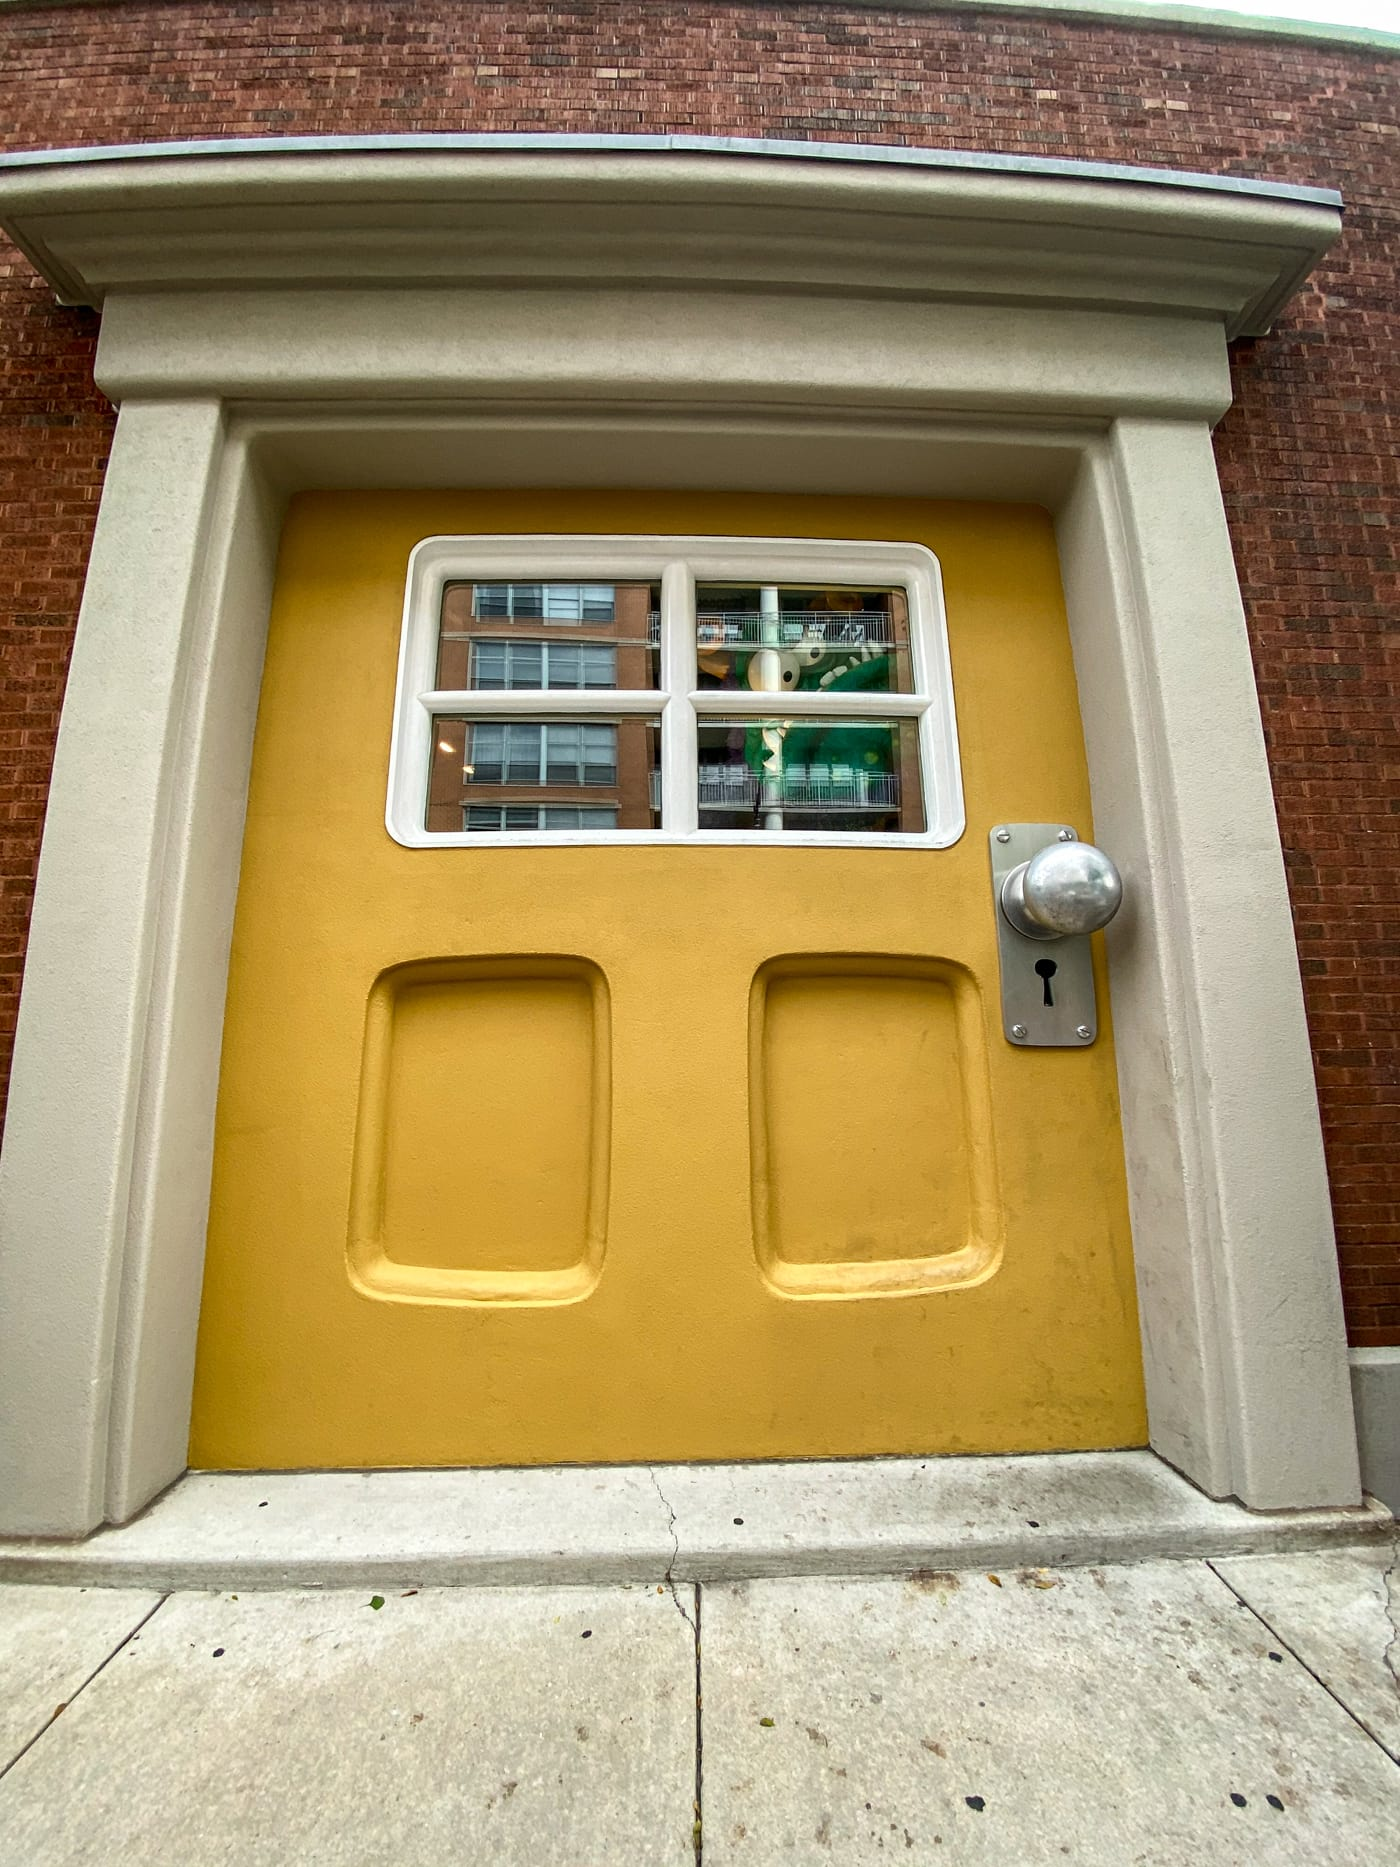 Big Monster Door at Big Monster Toys in Chicago, Illinois | A giant yellow door with a monster peeking out the window in the West Loop